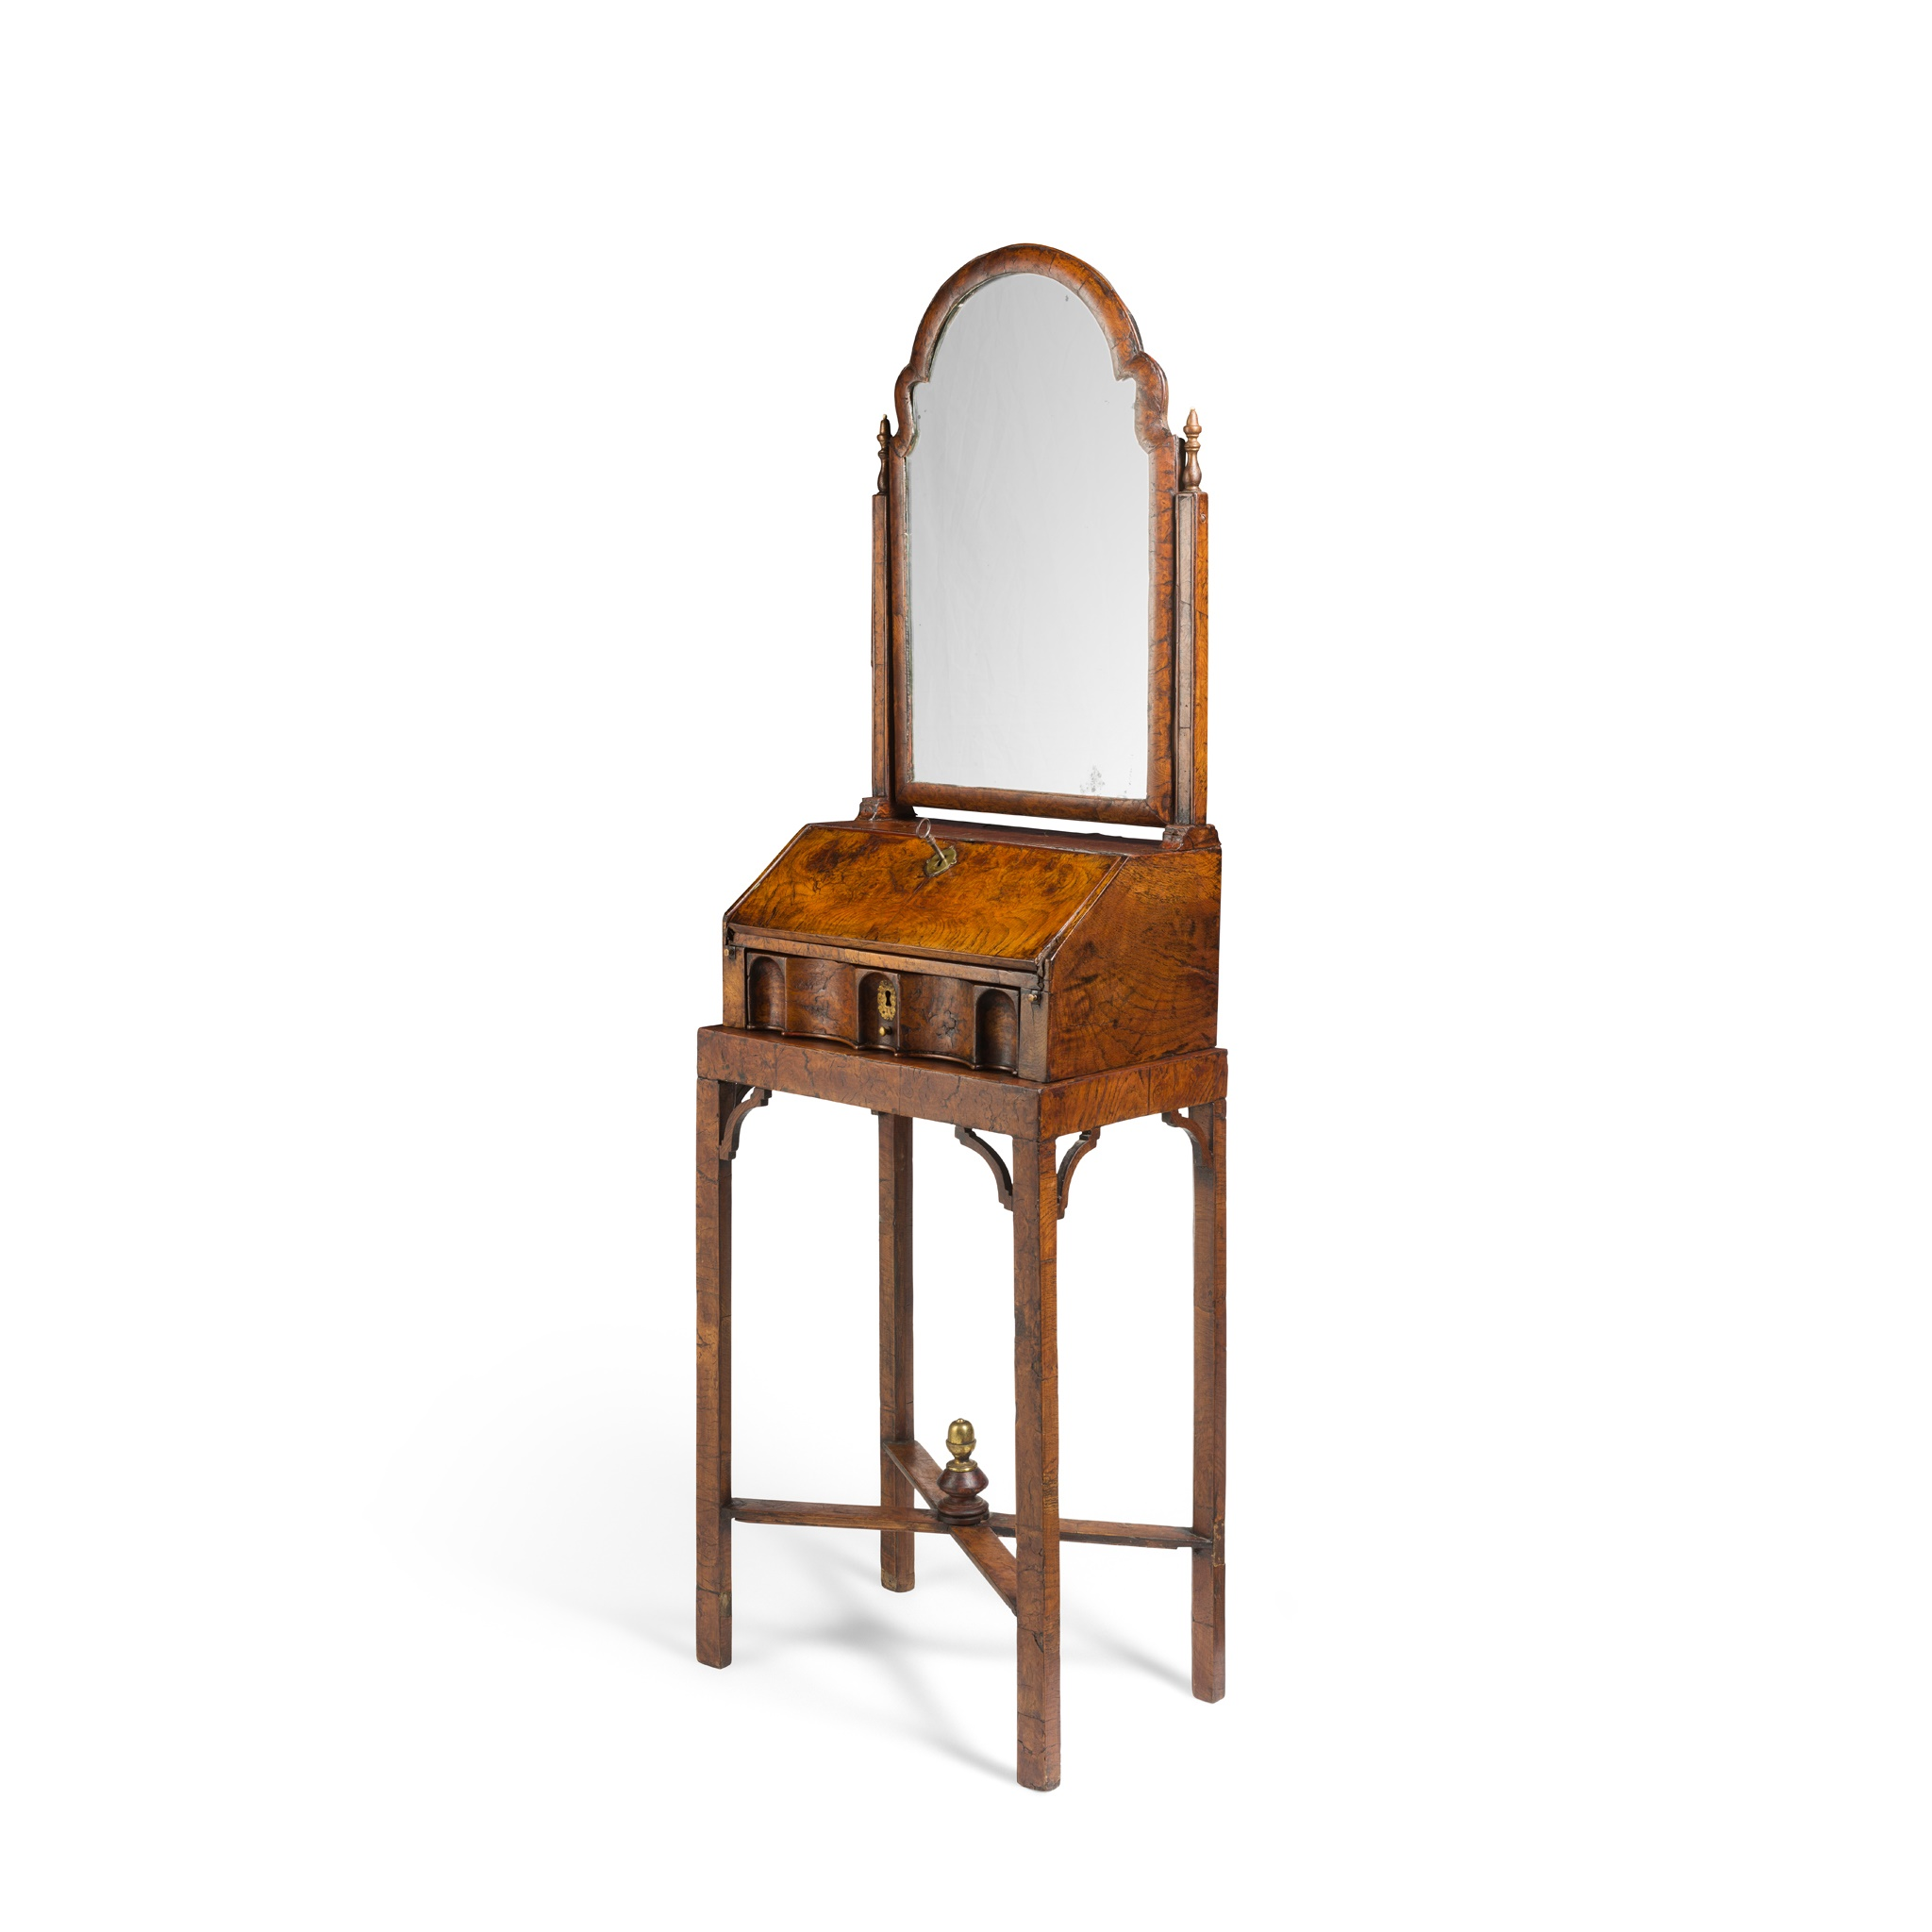 QUEEN ANNE BURR ELM AND RED JAPANNED TOILET MIRROR ON STAND EARLY 17TH CENTURY